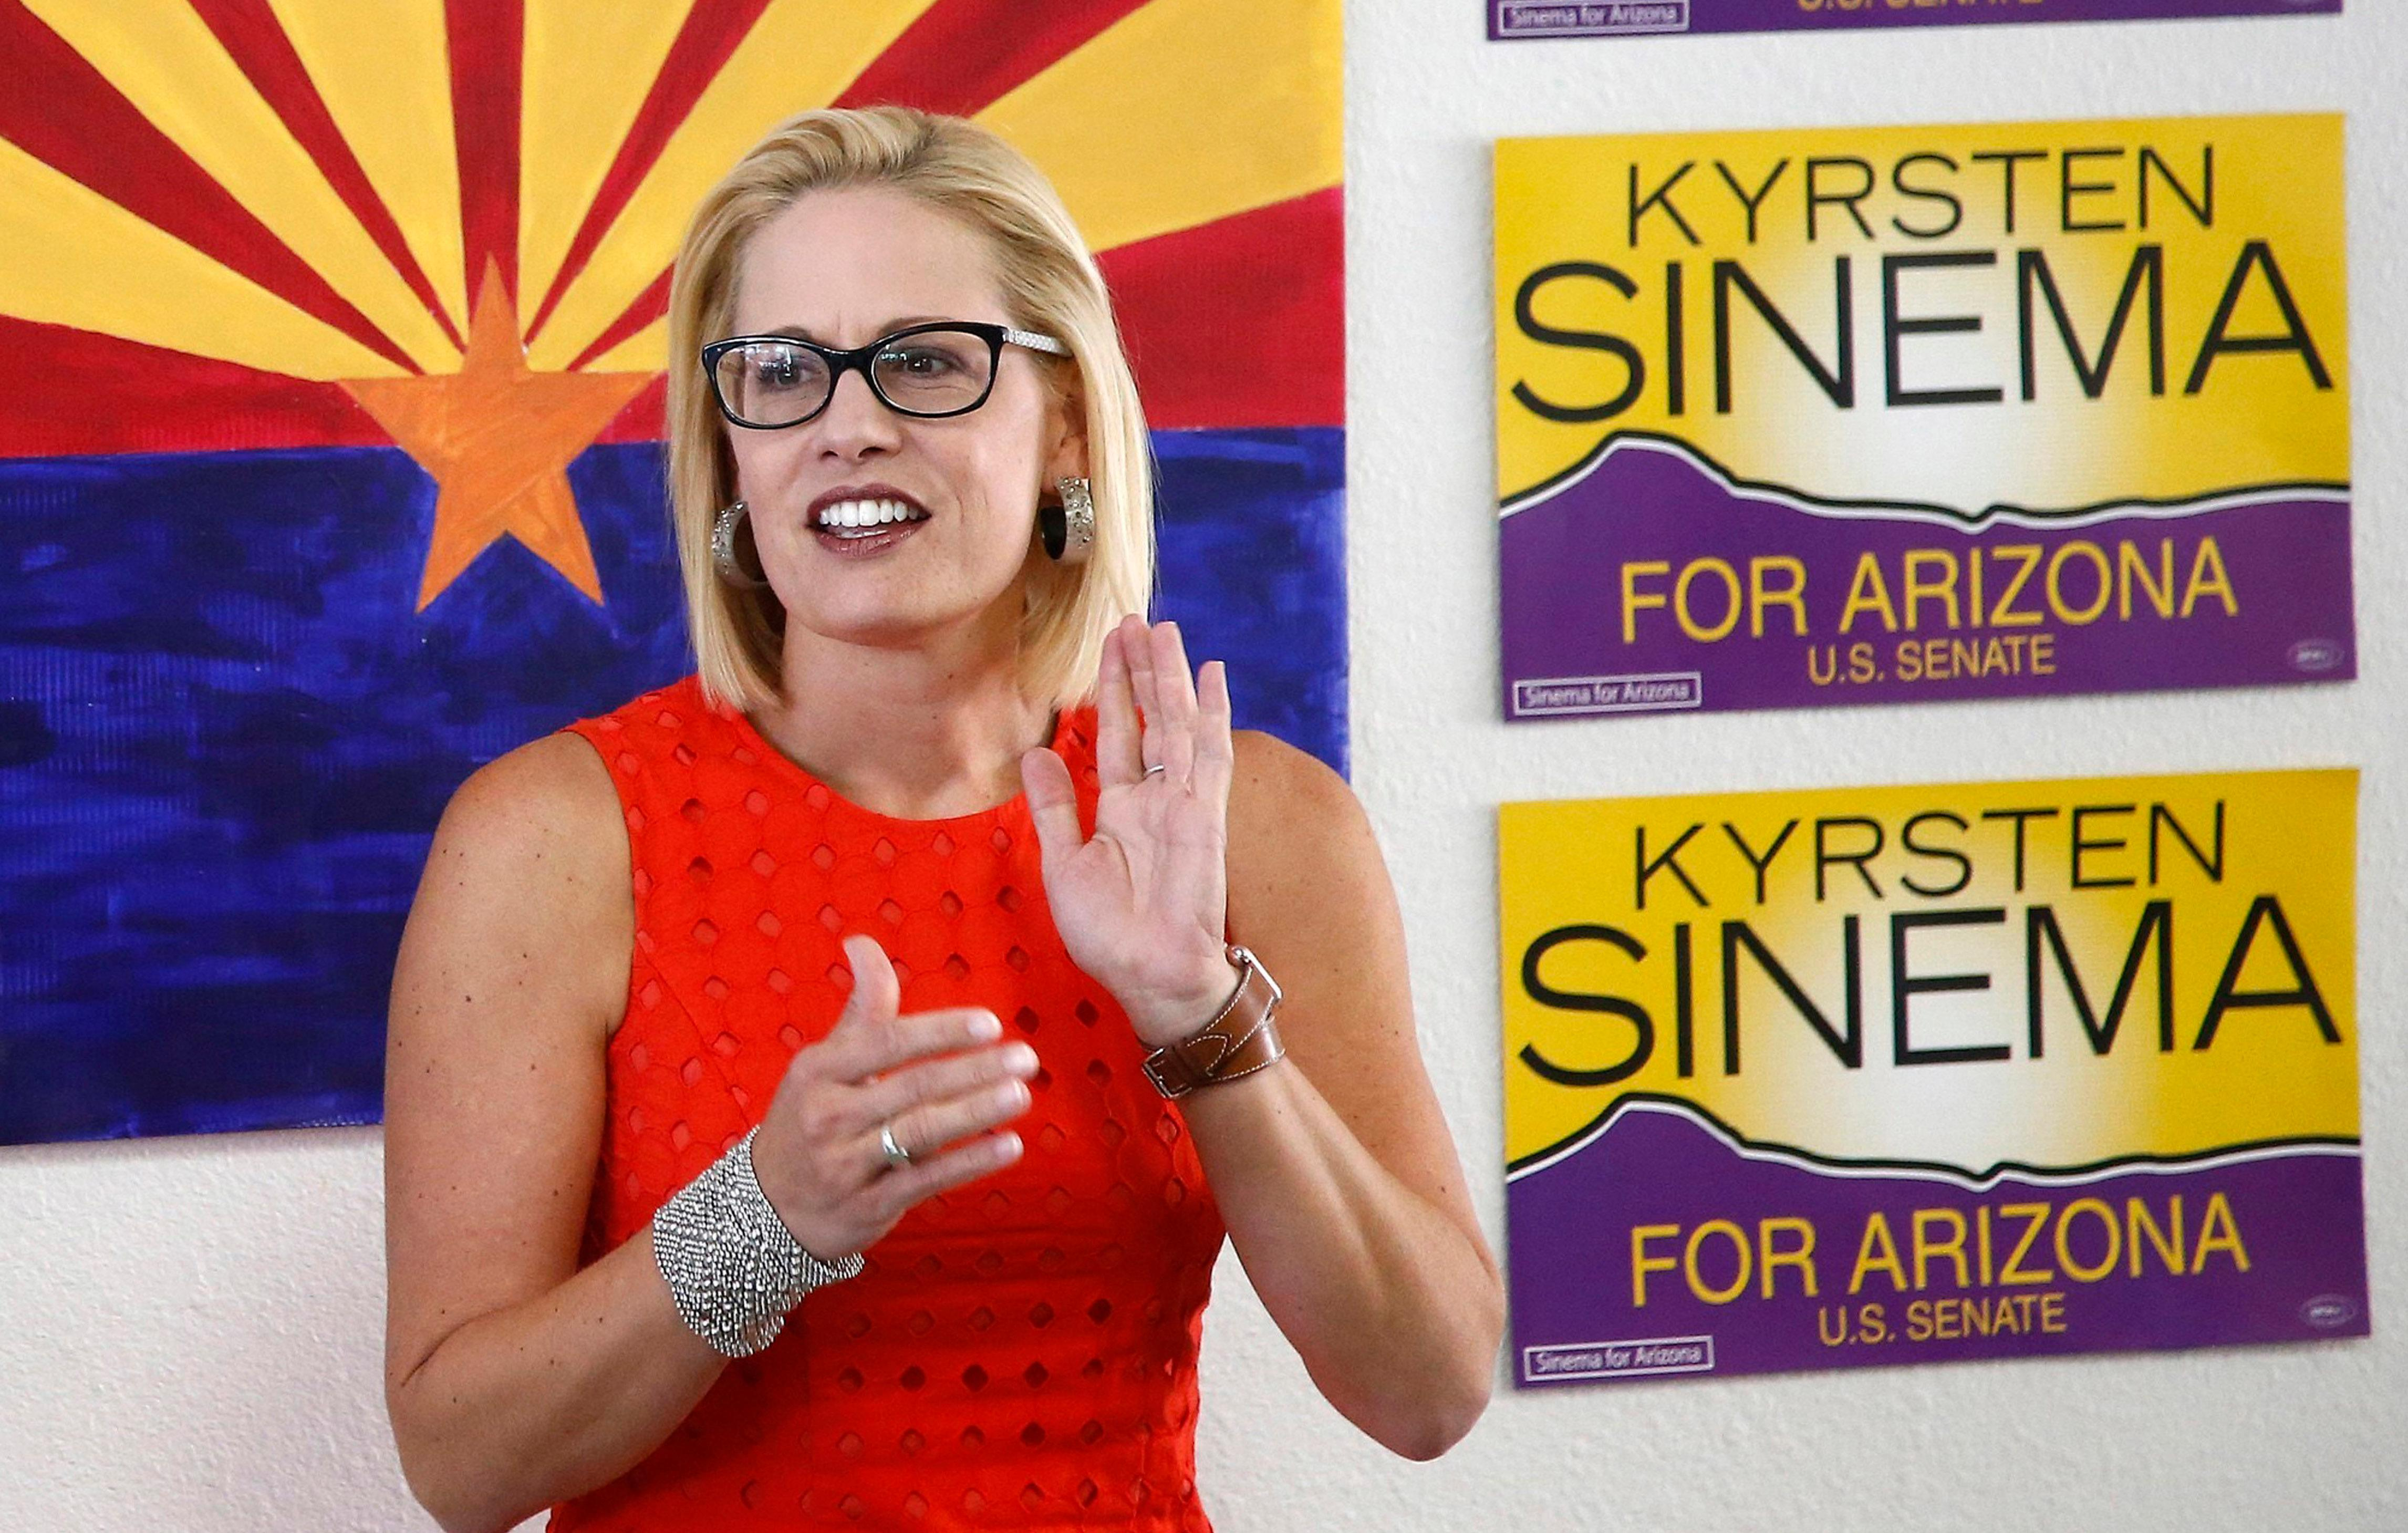 US Senate candidate, Kyrsten Sinema, is being criticized for her tacit support of the Taliban stemming from an answer she gave in a 2003 interview. KVI's David Boze compares the lack of media scrutiny applied to Sinema right now with the tidal wave of scrutiny heaped on a female Republican US Senate candidate back in 2010 regarding her off-handed comments about witchcraft. AP Photo/Ross D. Franklin, file)